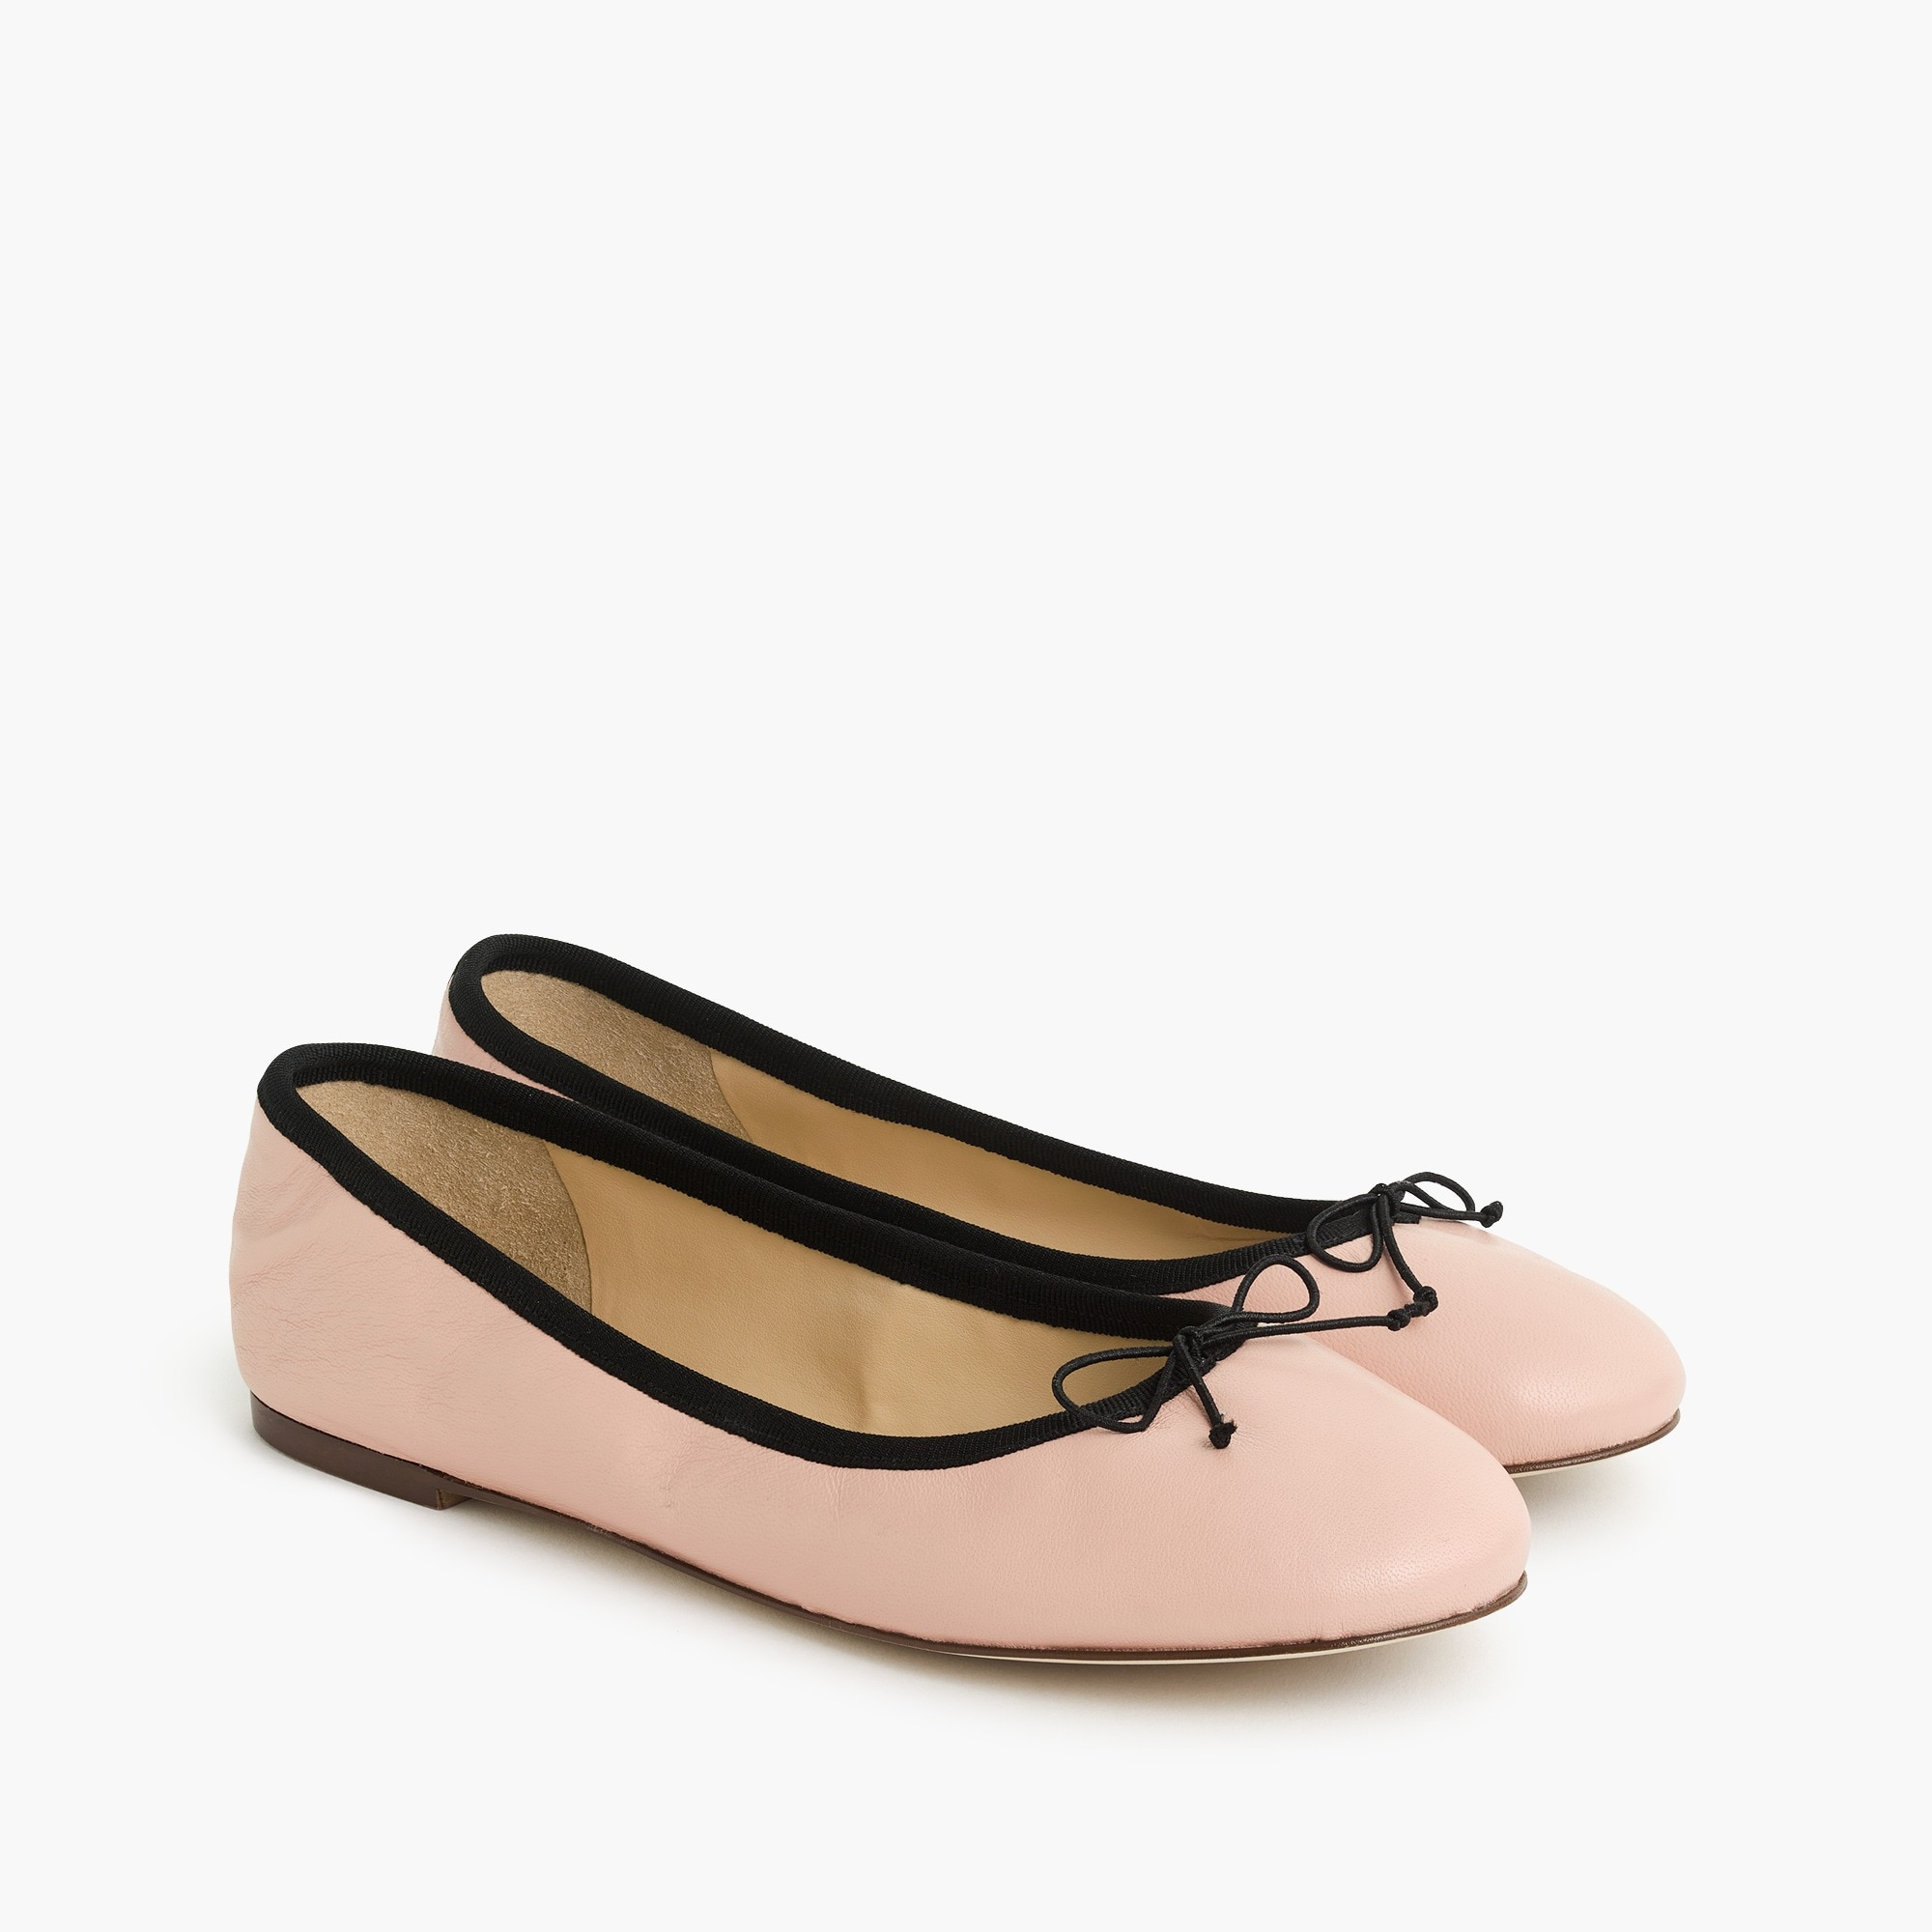 Evie ballet flats in leather women shoes c